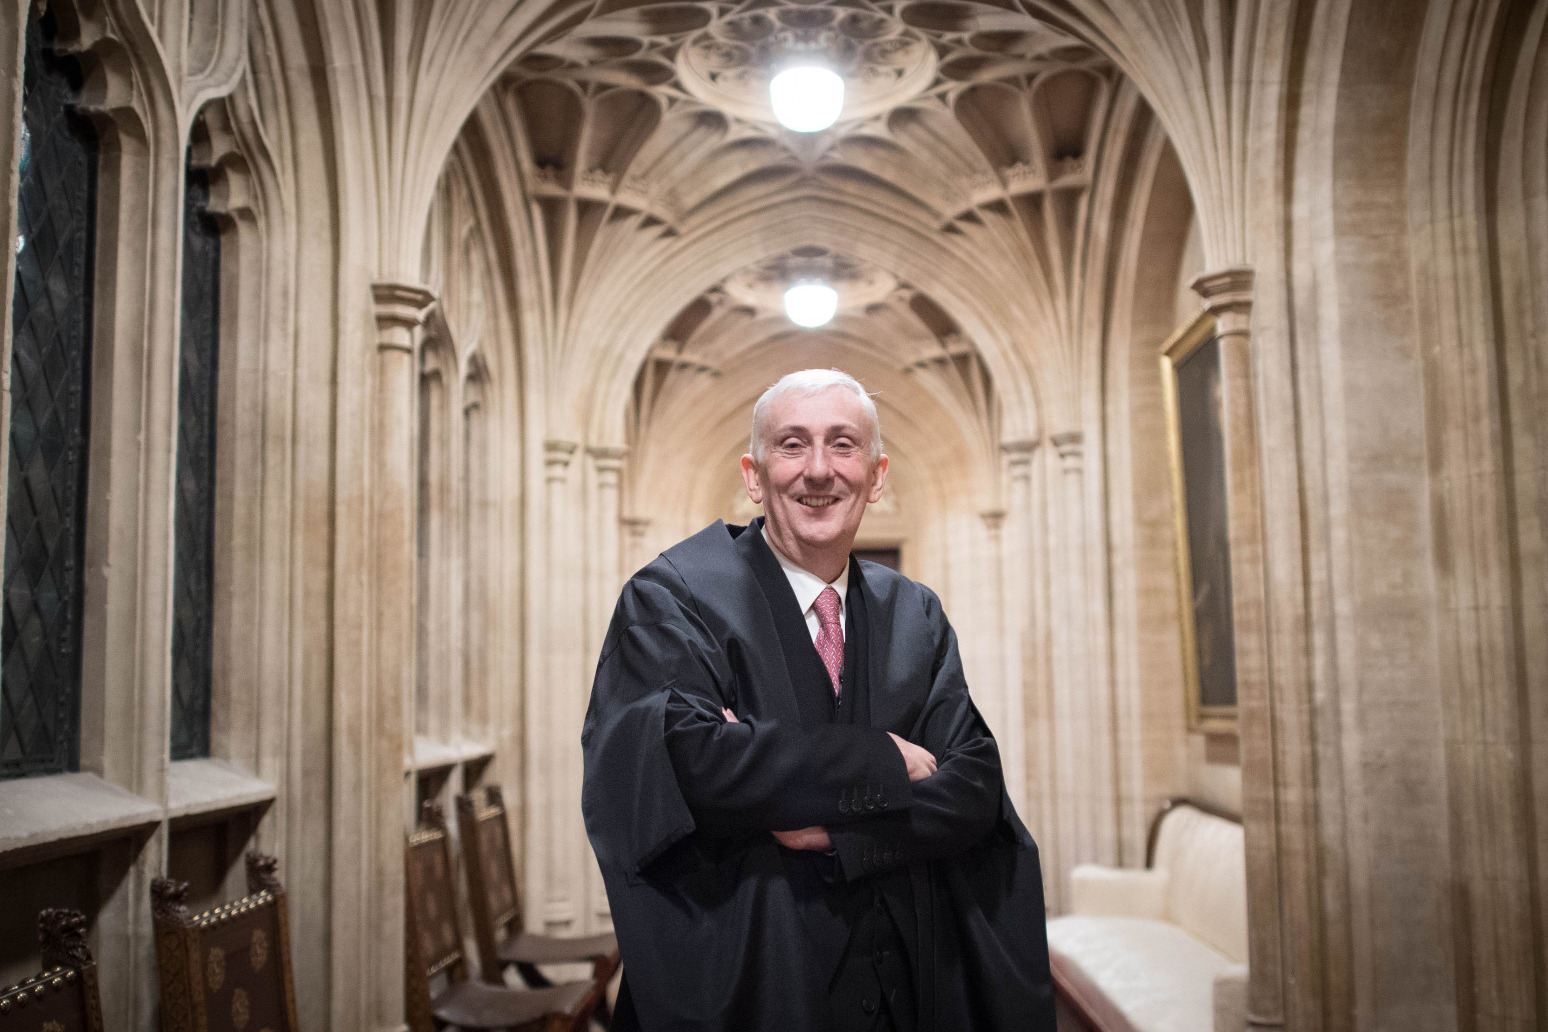 MPS ELECT SIR LINDSAY HOYLE TO REPLACE JOHN BERCOW AS COMMONS SPEAKER